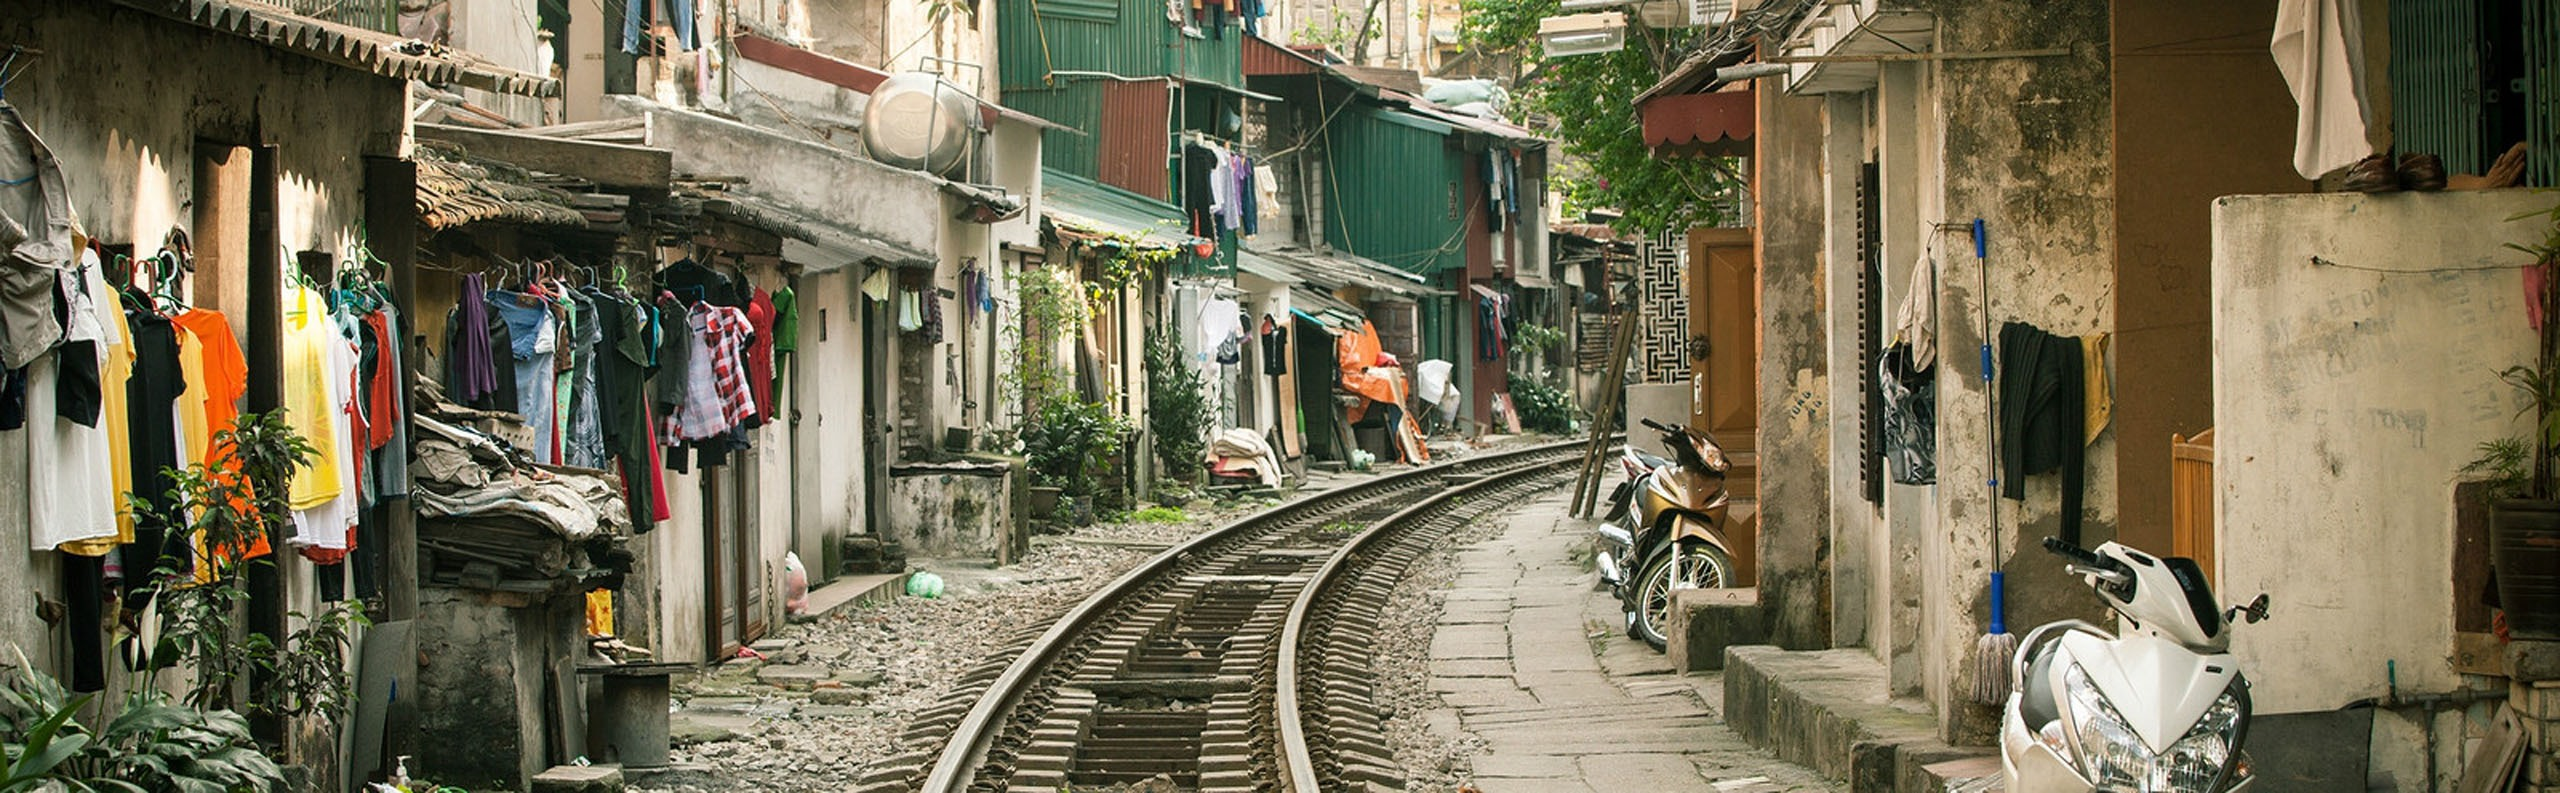 Plan a Trip to Hanoi and Choosing What Sights to See